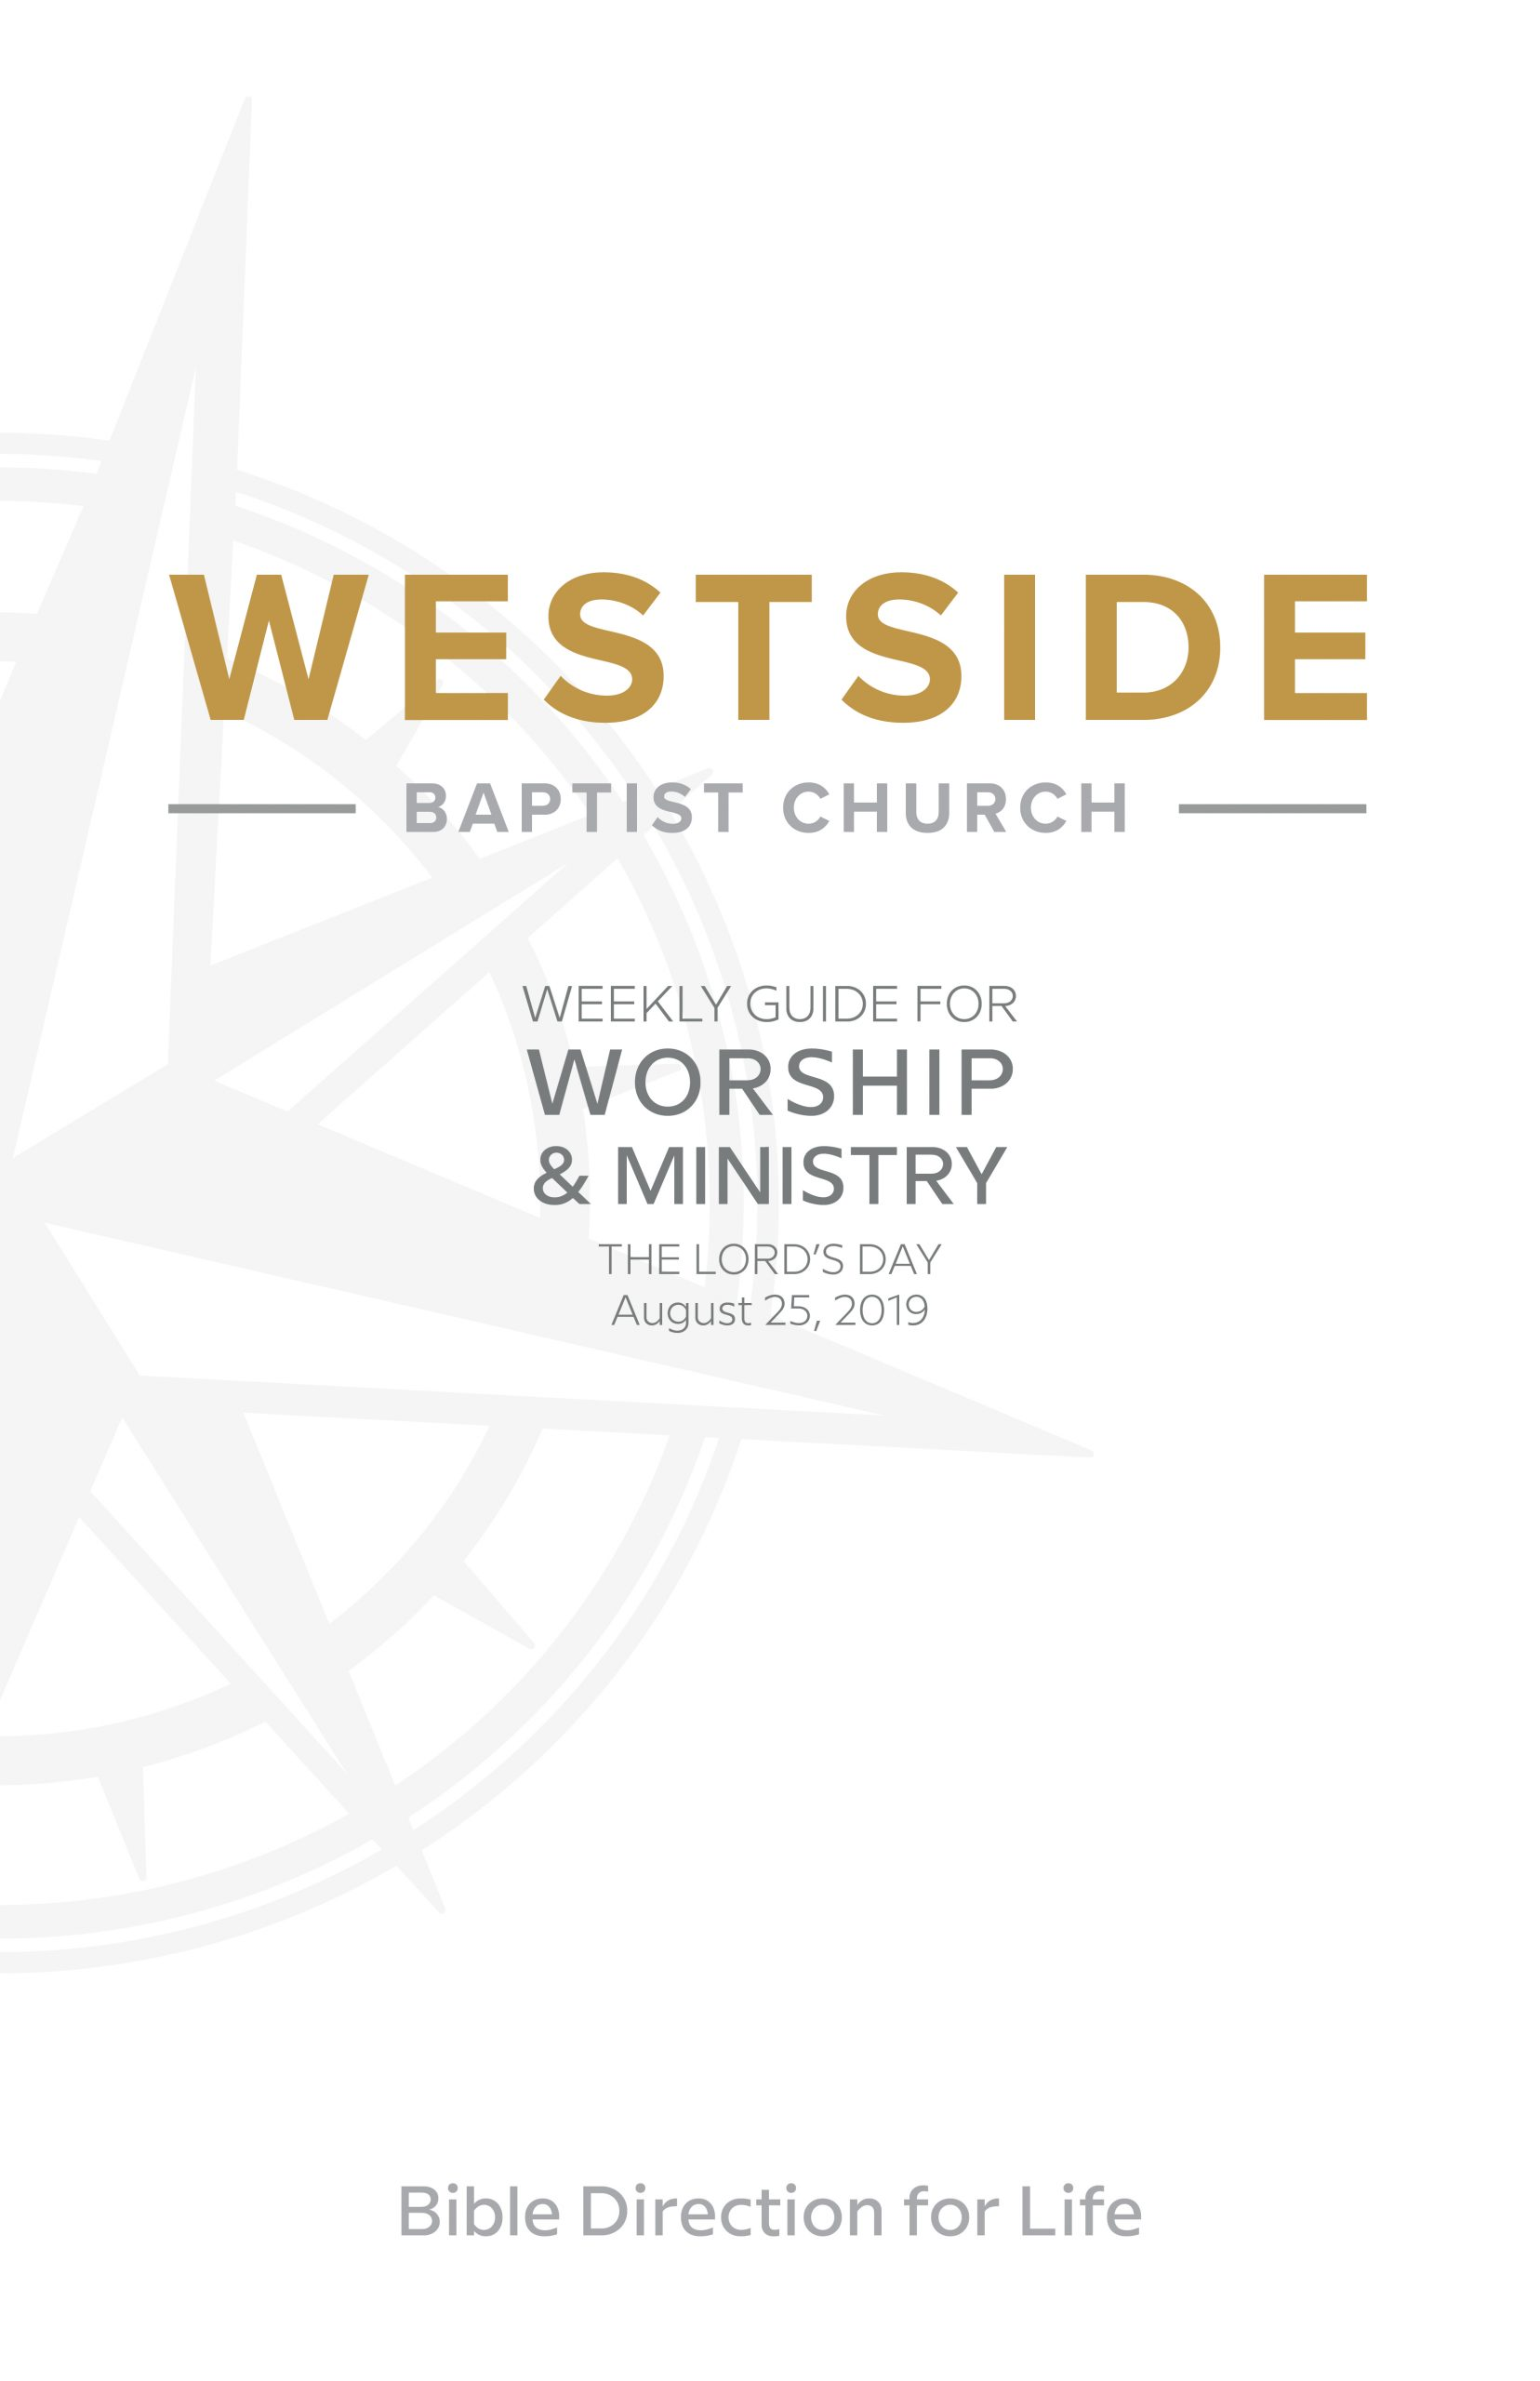 Weekly Guide for Worship and Ministry—August 25